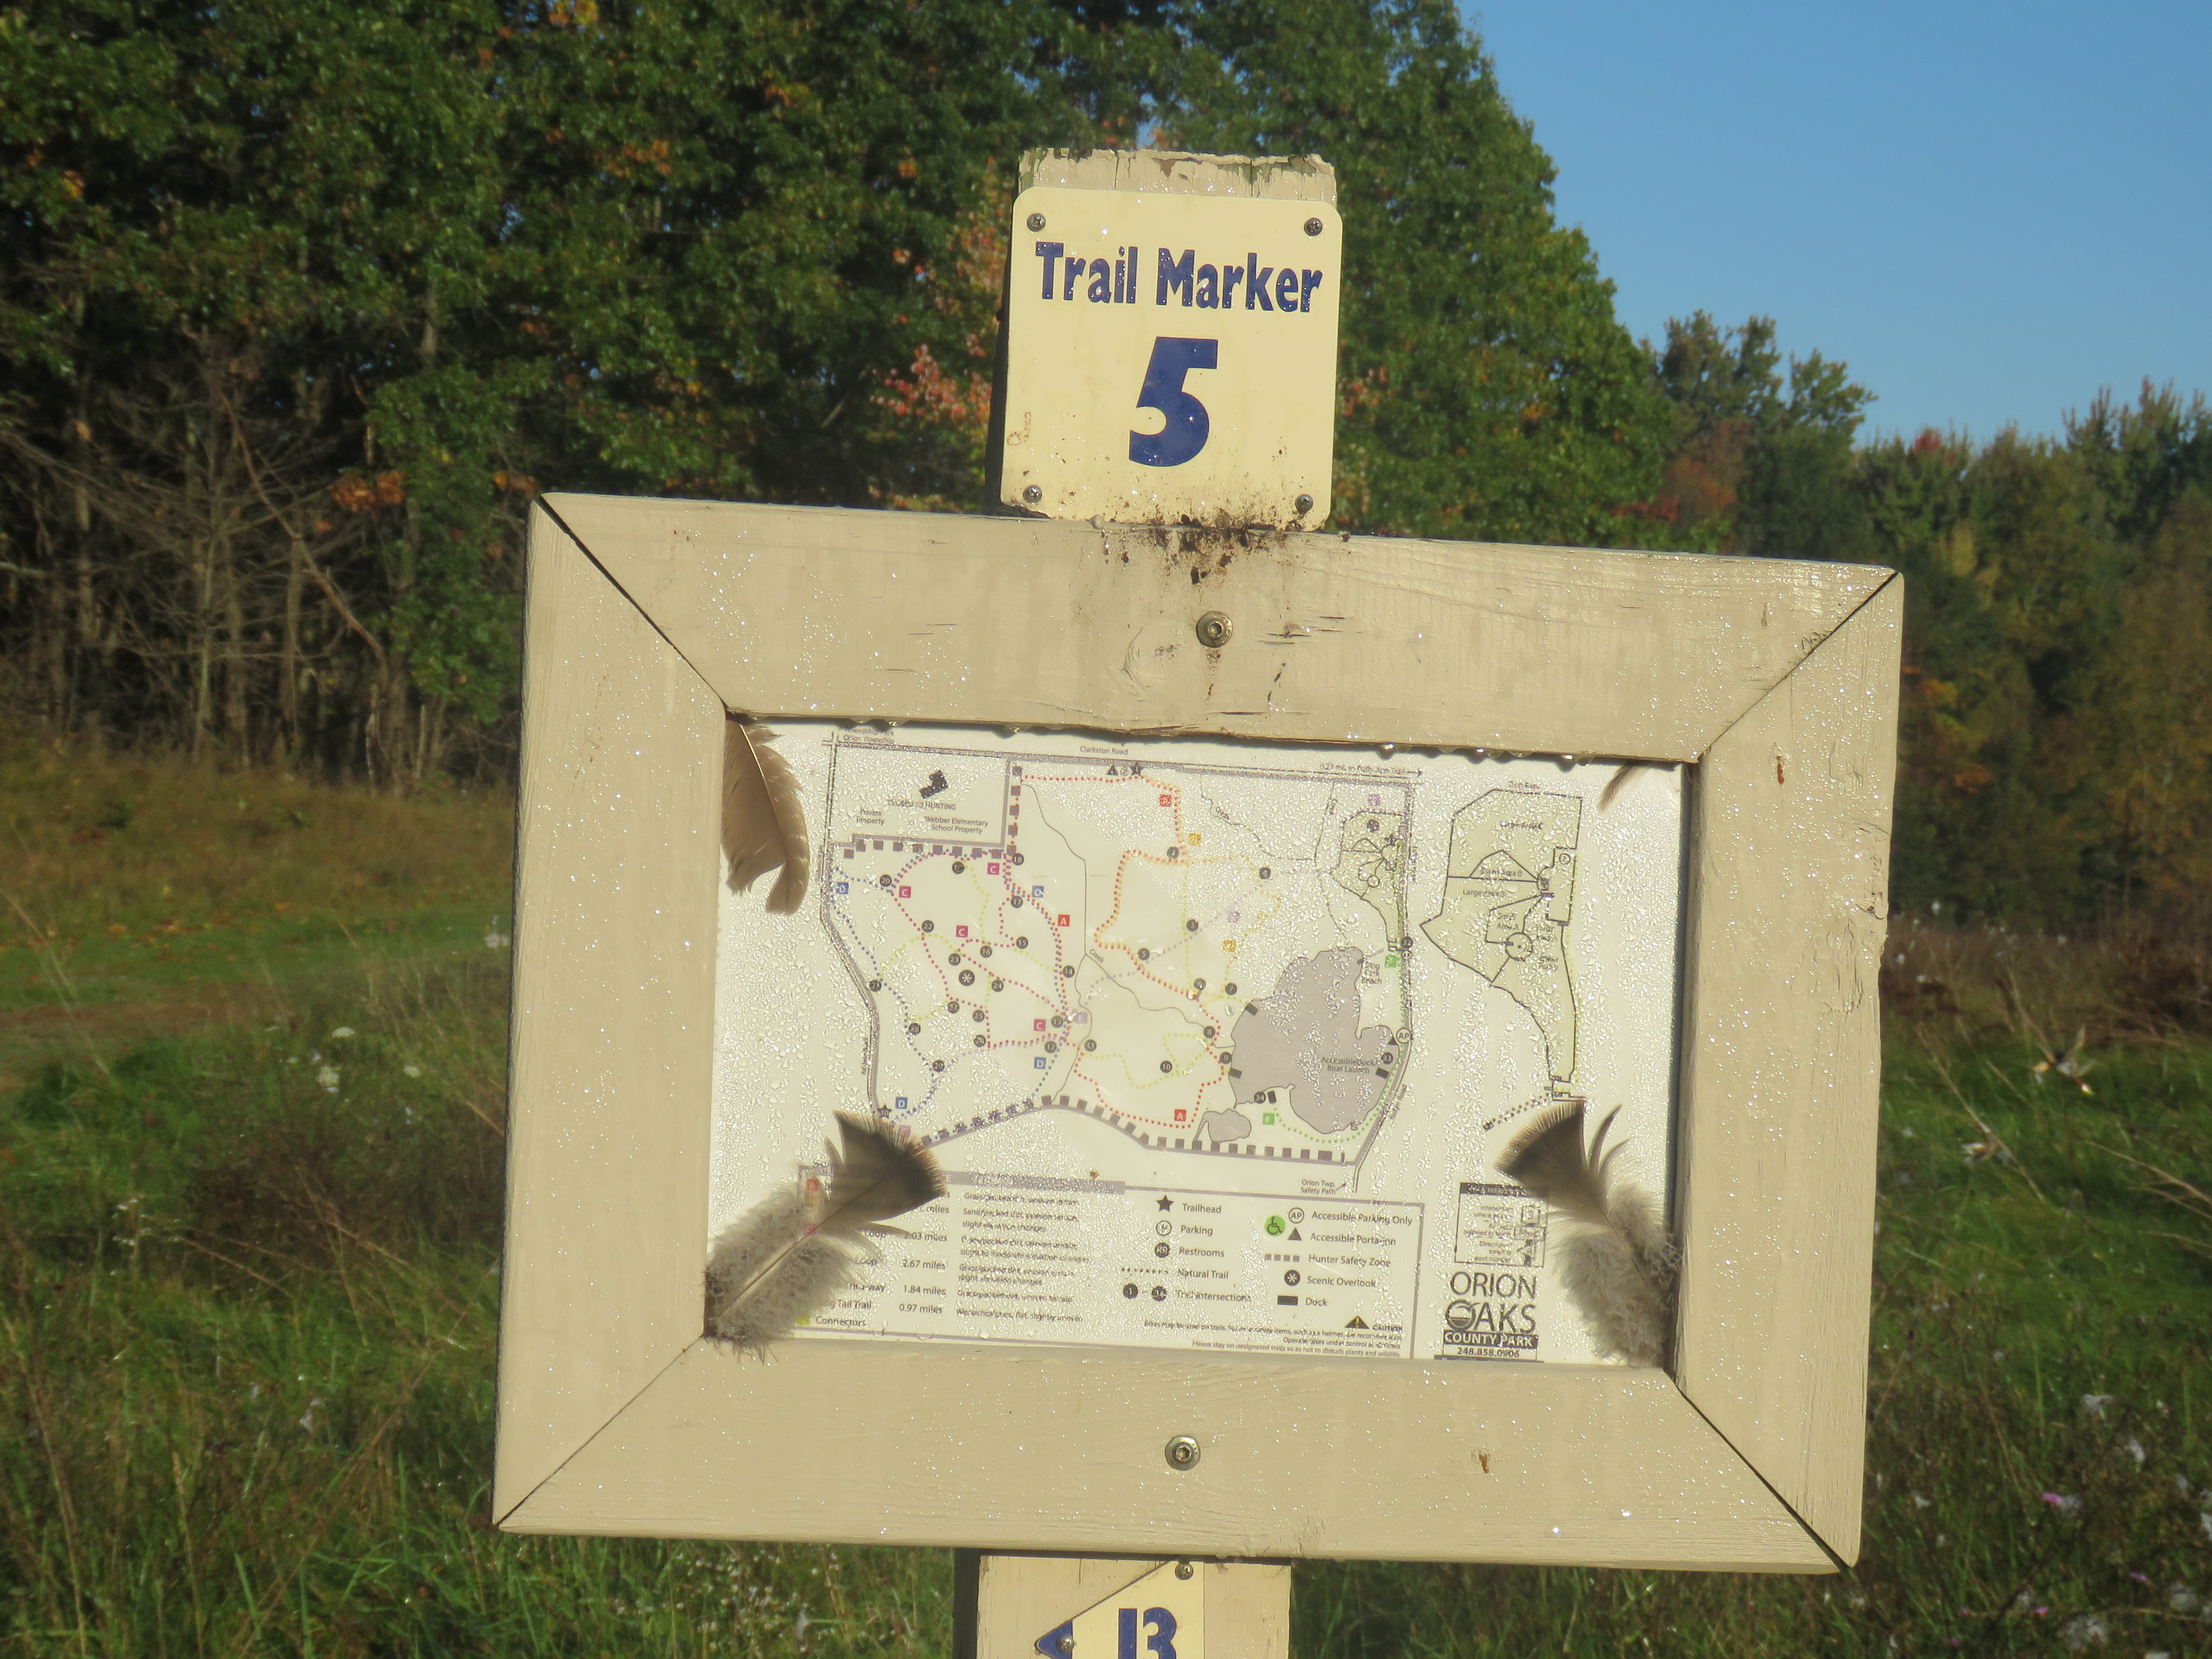 A photo of a sign that is labeled Trail Marker 5 and shows a trail map of the area at Orion Oaks County Park. Trees with mostly green leaves stand in the background. Some leaves are starting to change to orange and red.